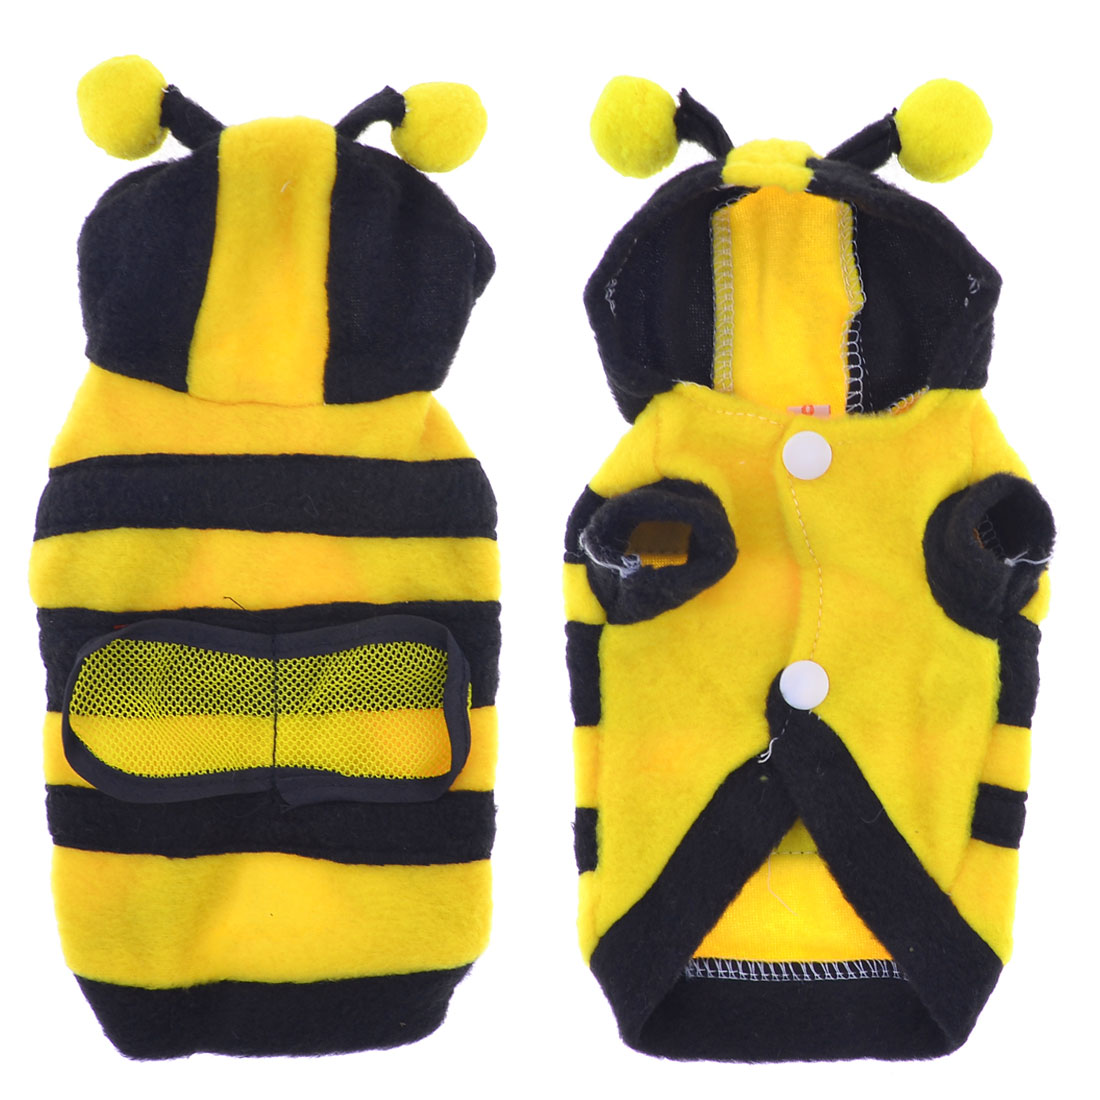 Single Breasted Bee Shaped Hooded Pet Dog Coat Jacket Yellow Black Size XXS